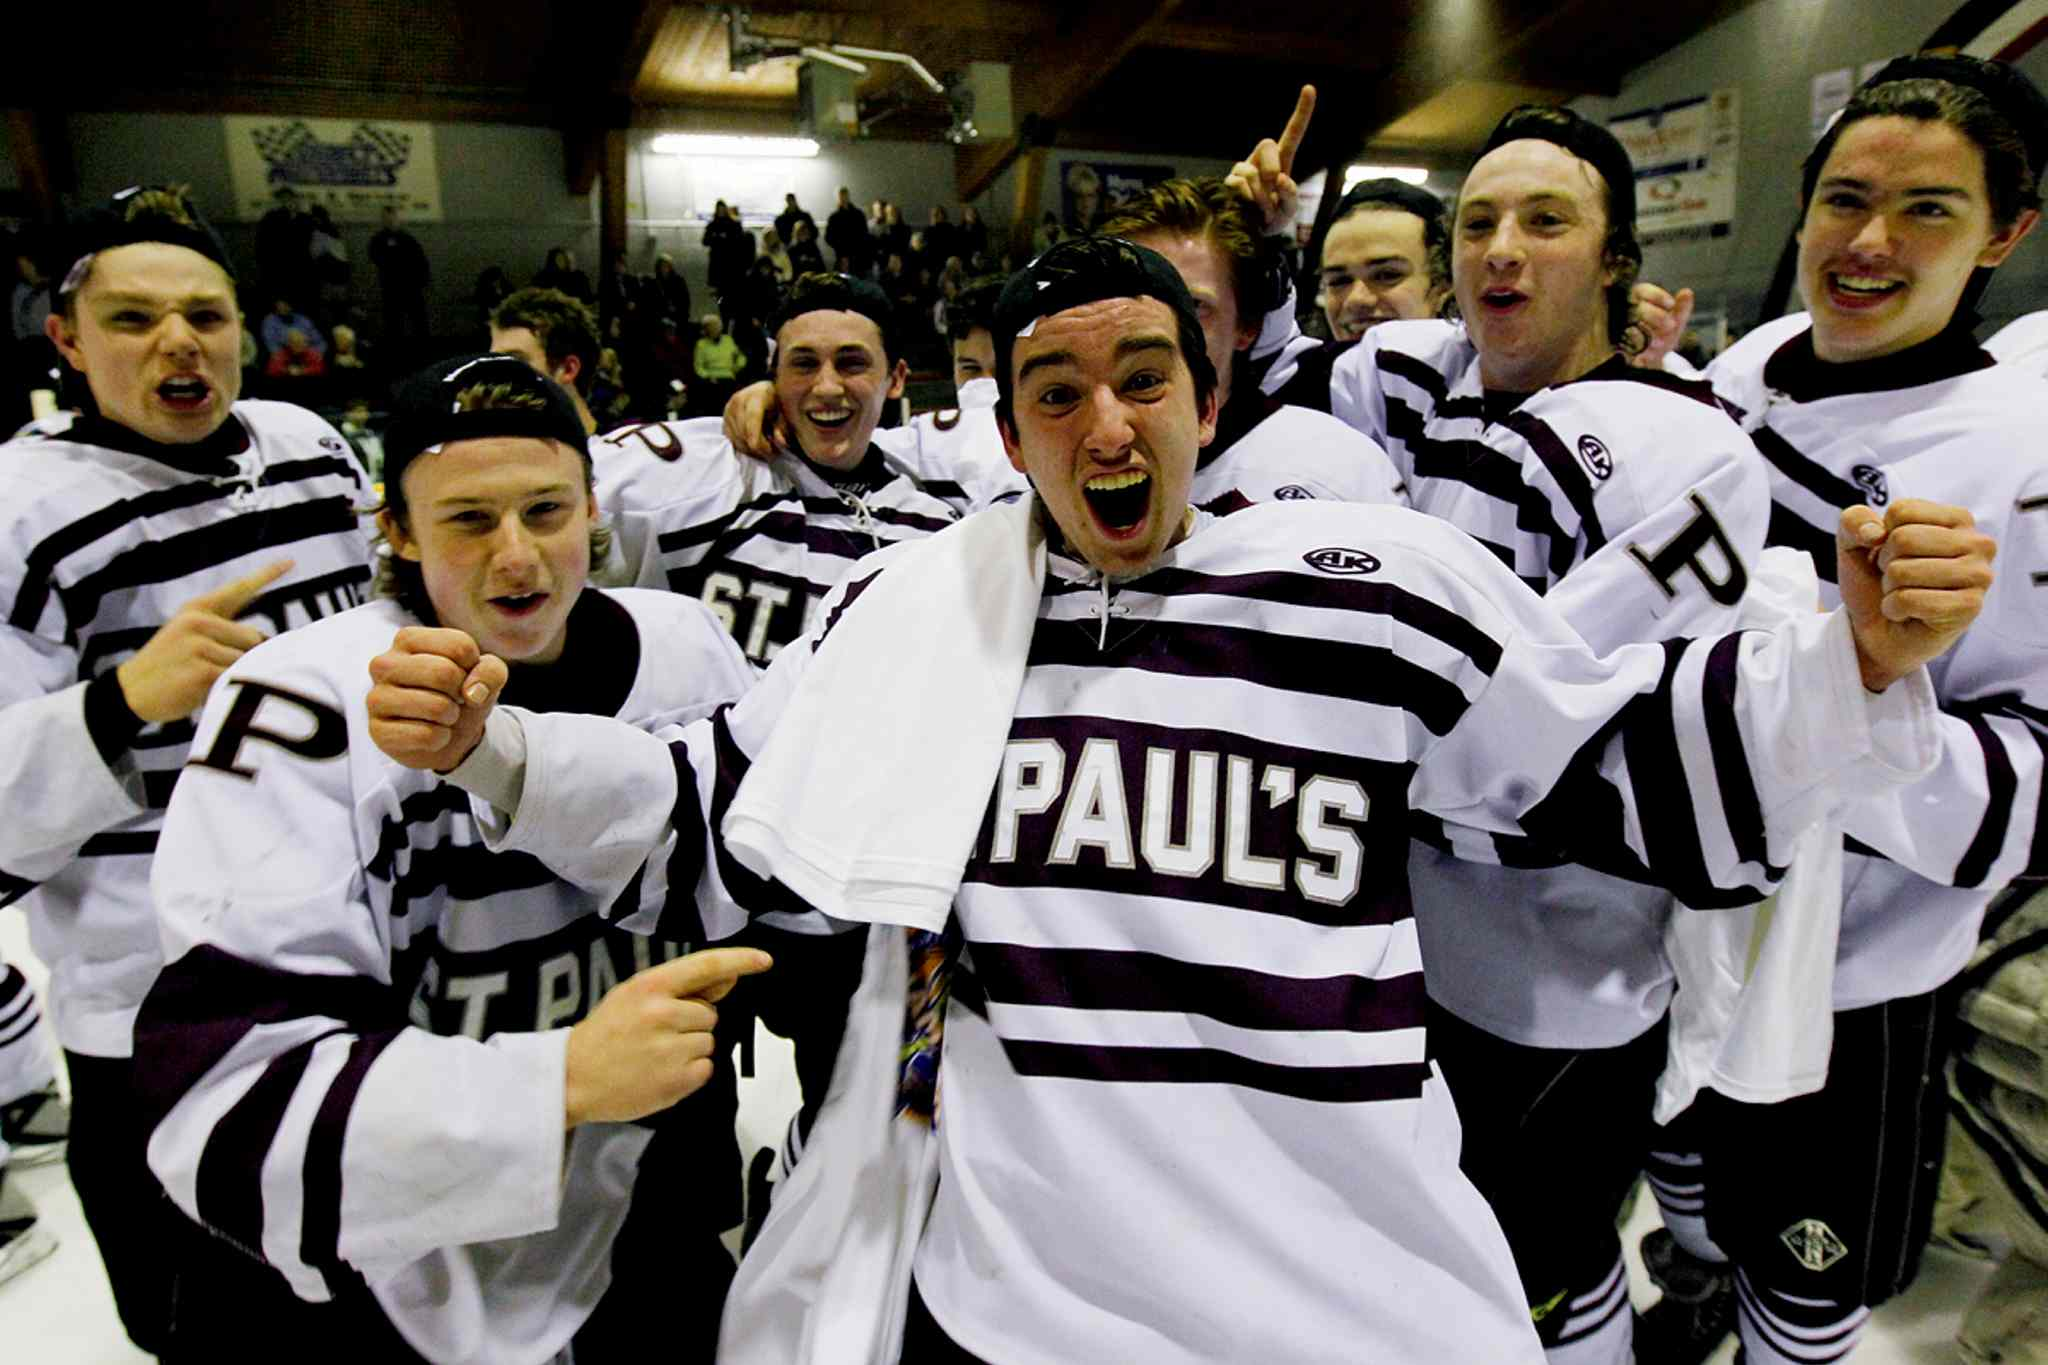 Members of the St. Paul's Crusaders celebrate a win over the Kelvin Clippers in the 2012 Provincial AAAA Boys' High School Hockey Championship. The Crusaders had a disappointing finish in last year's championship run, being knocked out in the quarterfinal, but have fought hard to take the top spot at the AAAA level. They hold a 13-0 record in the Winnipeg High School Hockey League's Platinum Promotions Division.